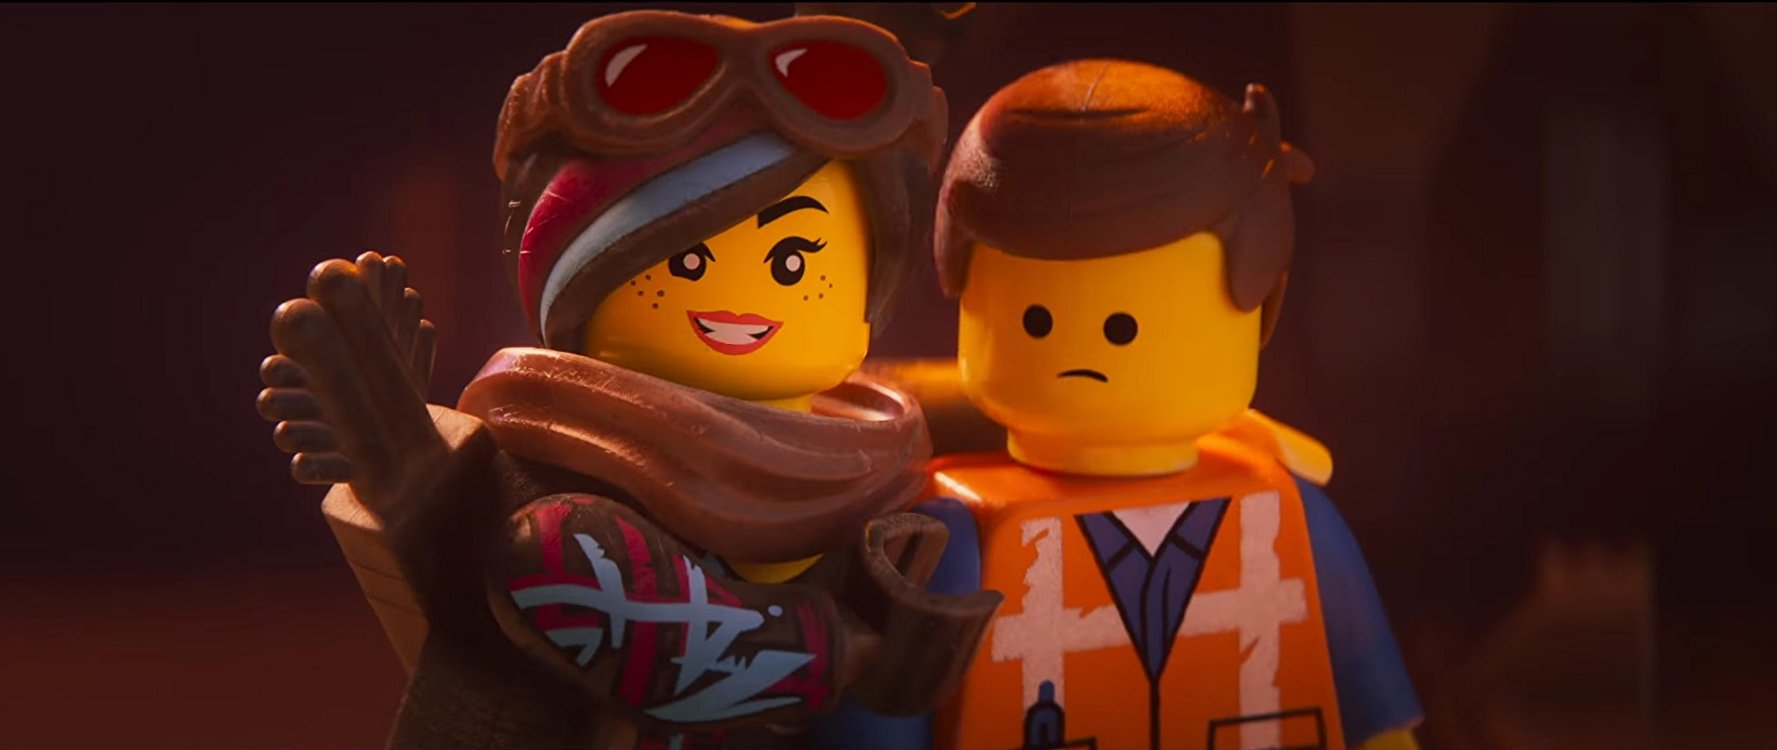 The Lego Movie 2: The Second PartPost navigation